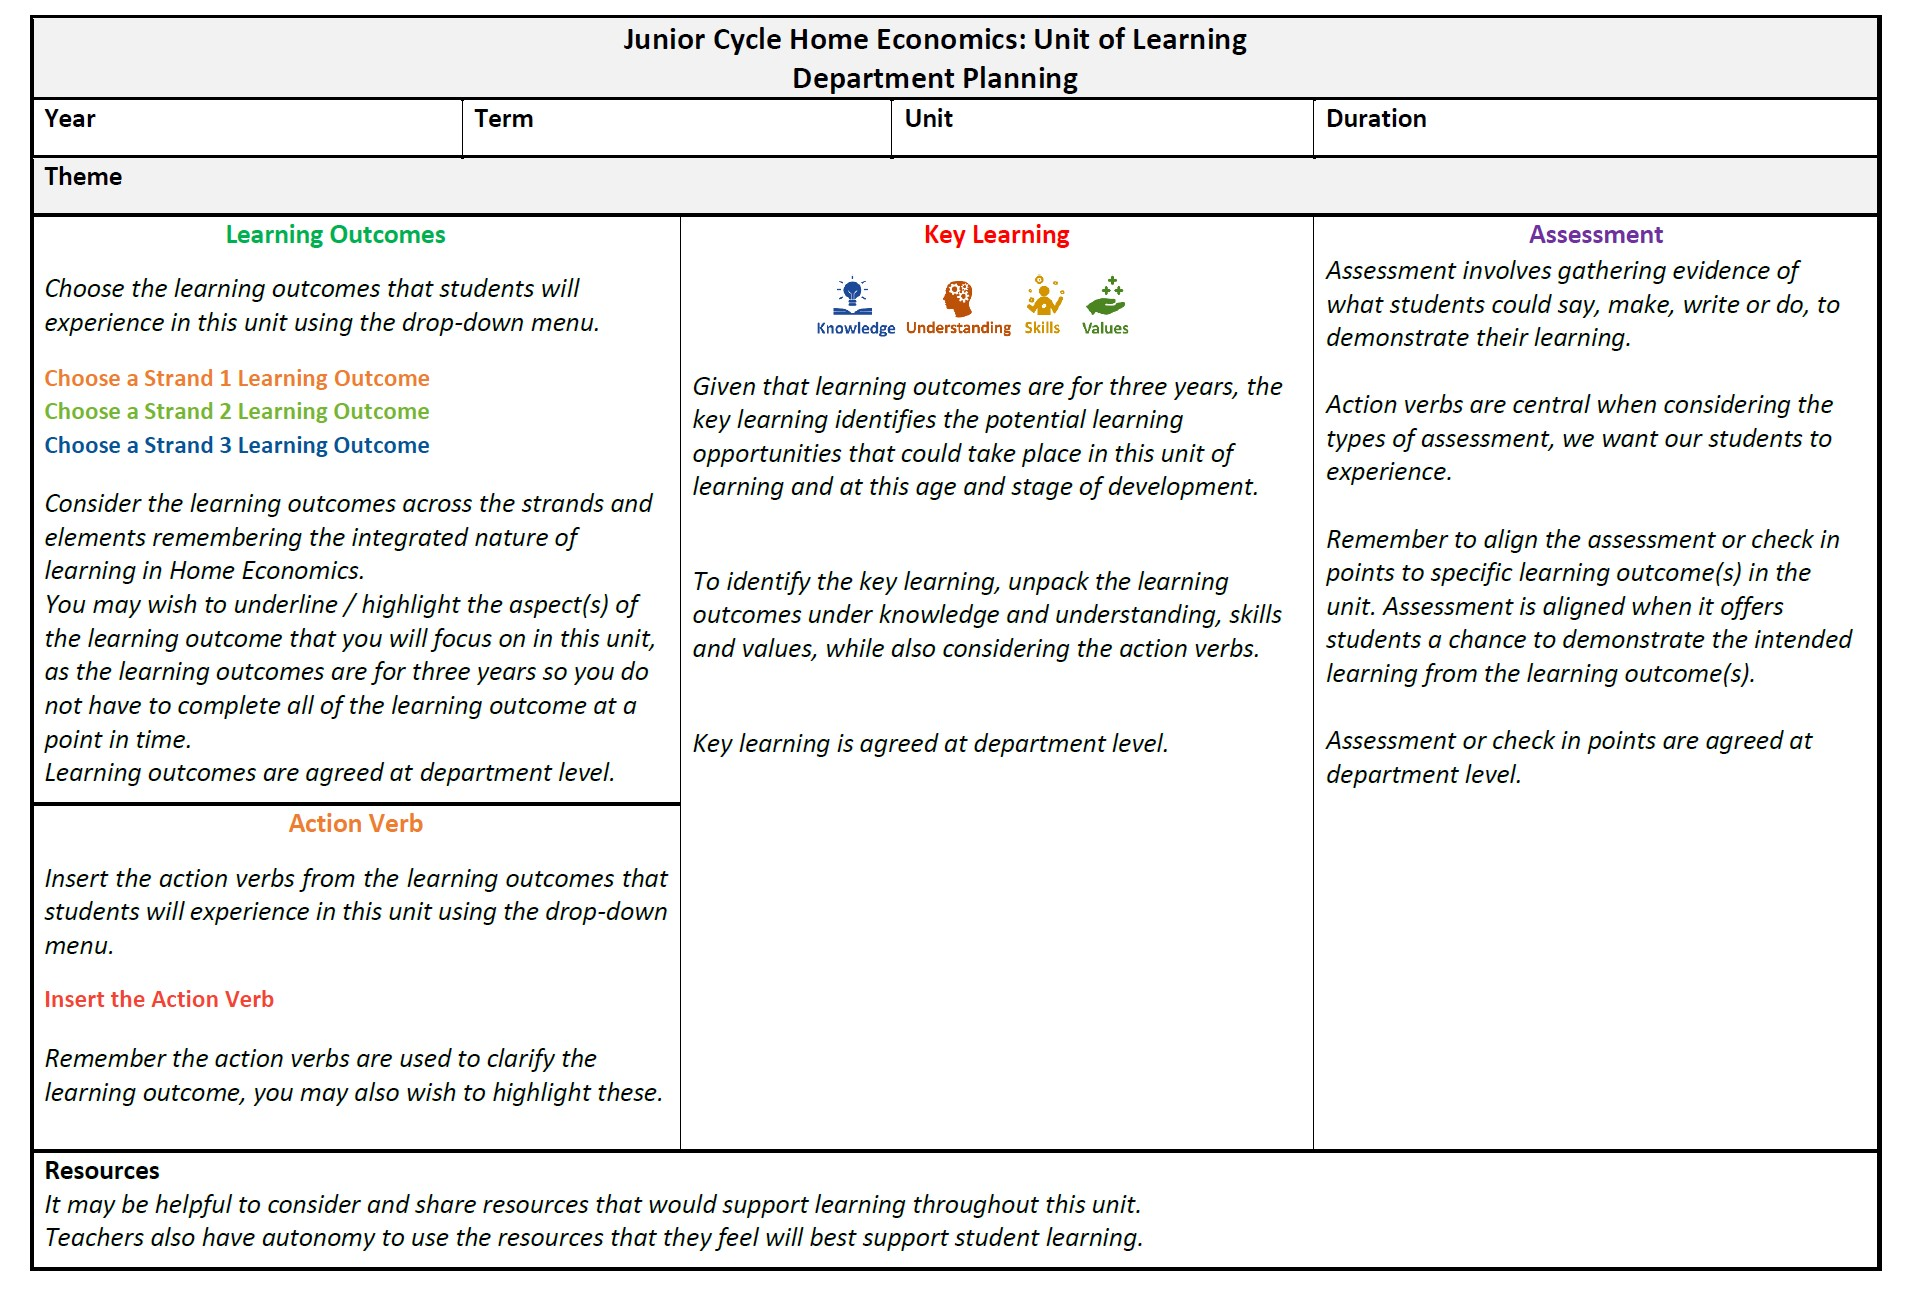 Home Economics Interactive Unit of Learning Planning Template (Landscape Version)